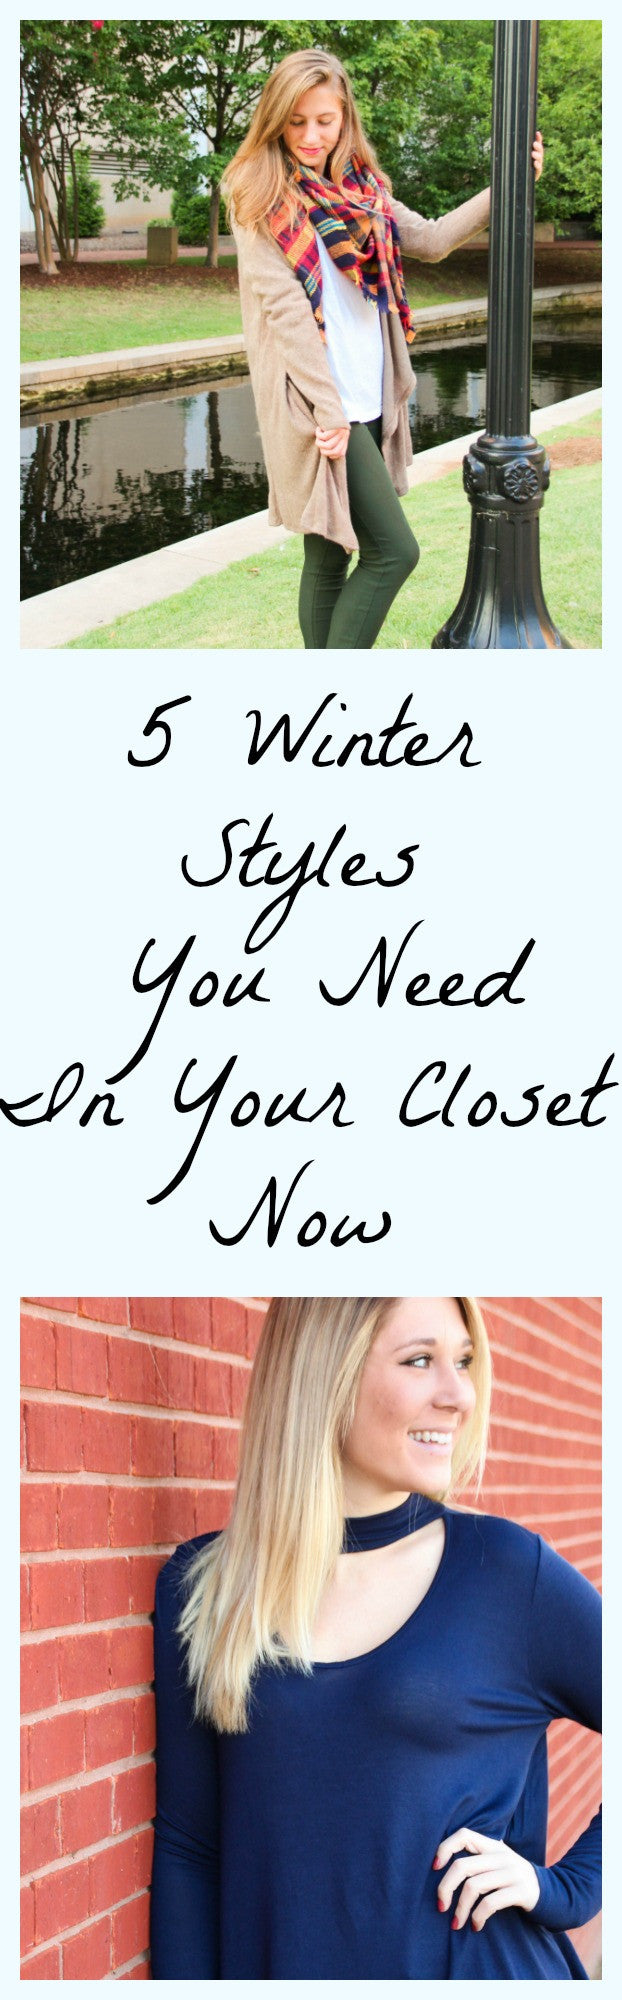 5 Winter Styles You Need